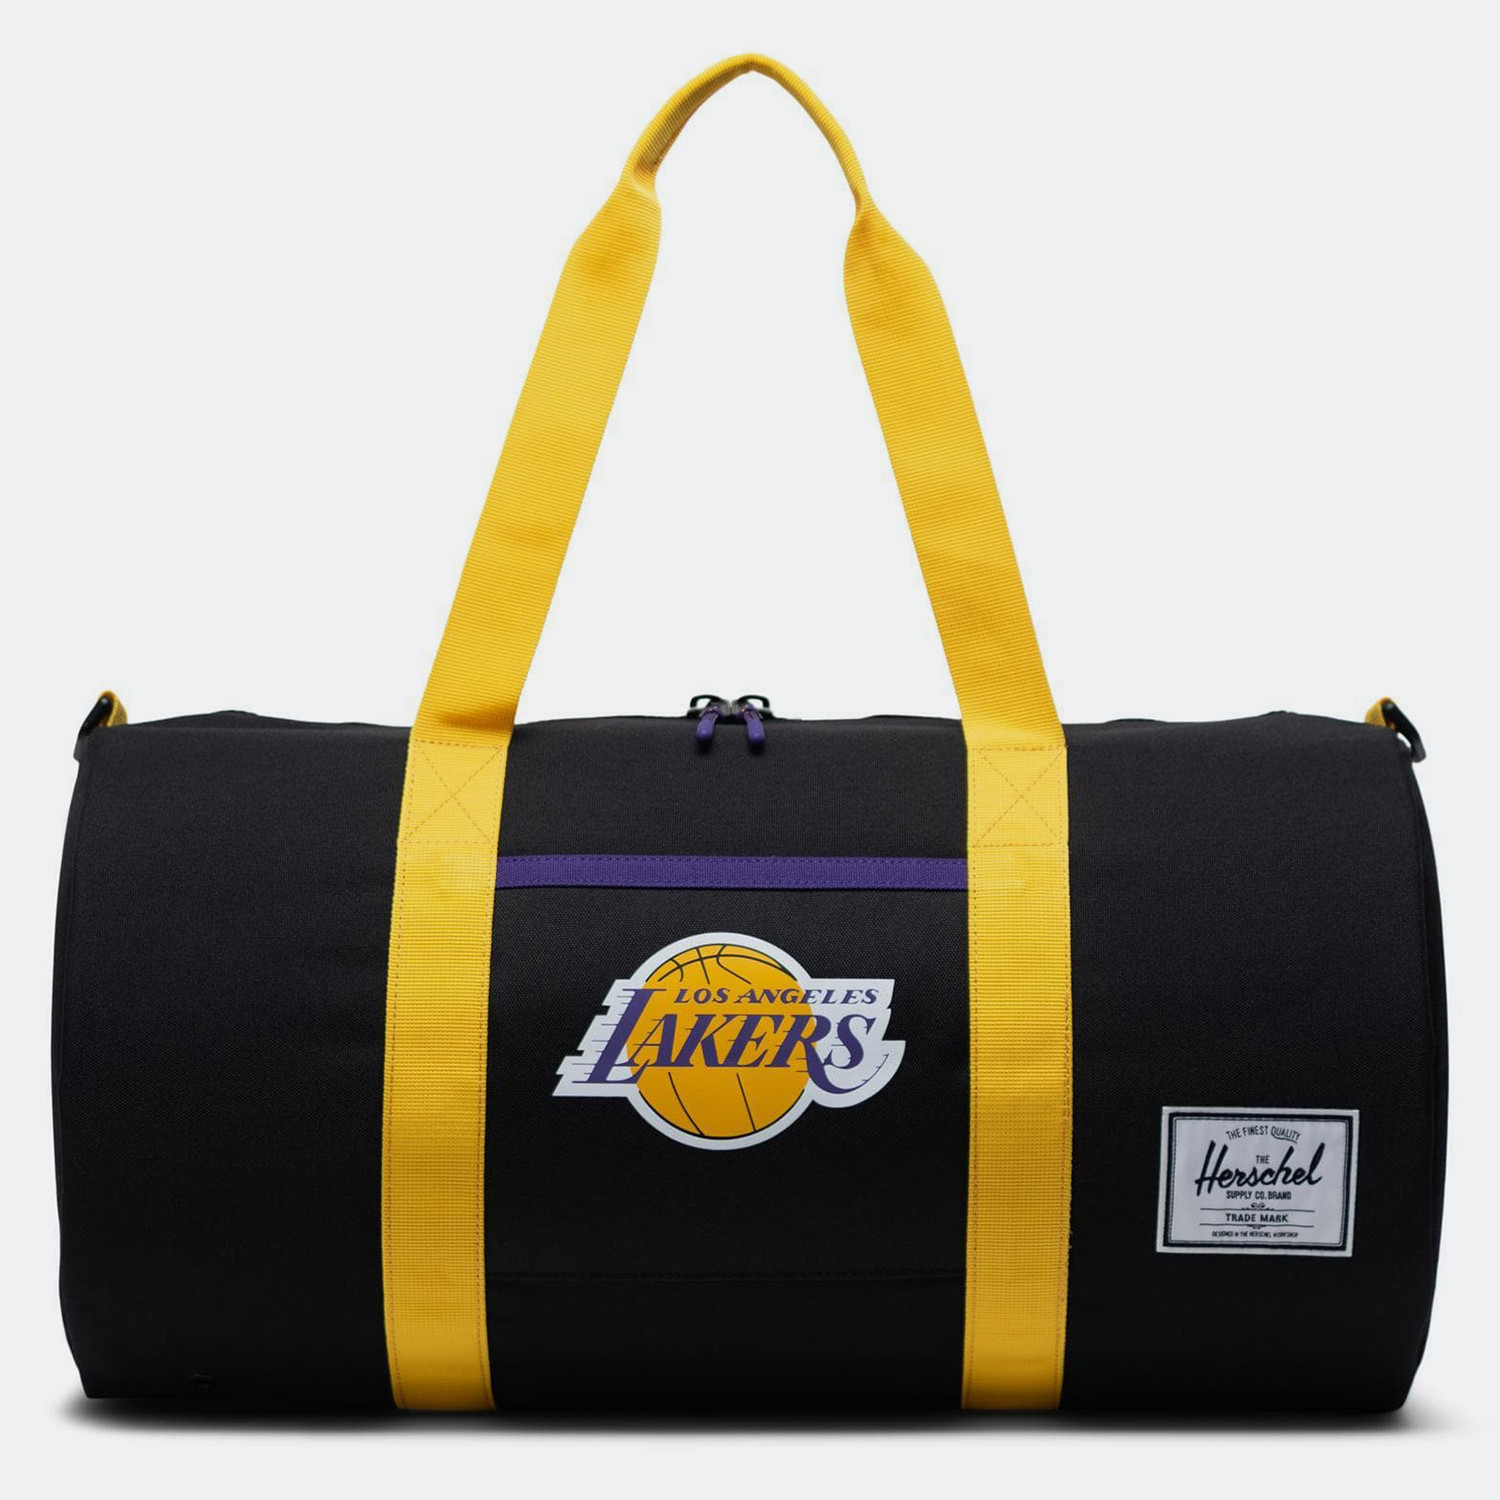 Herschel Sutton Mid-Volume Los Angeles Lakers Τσάντα Ταξιδιού 28L - 26 x 51,4 x 26 cm (9000064375_48998)